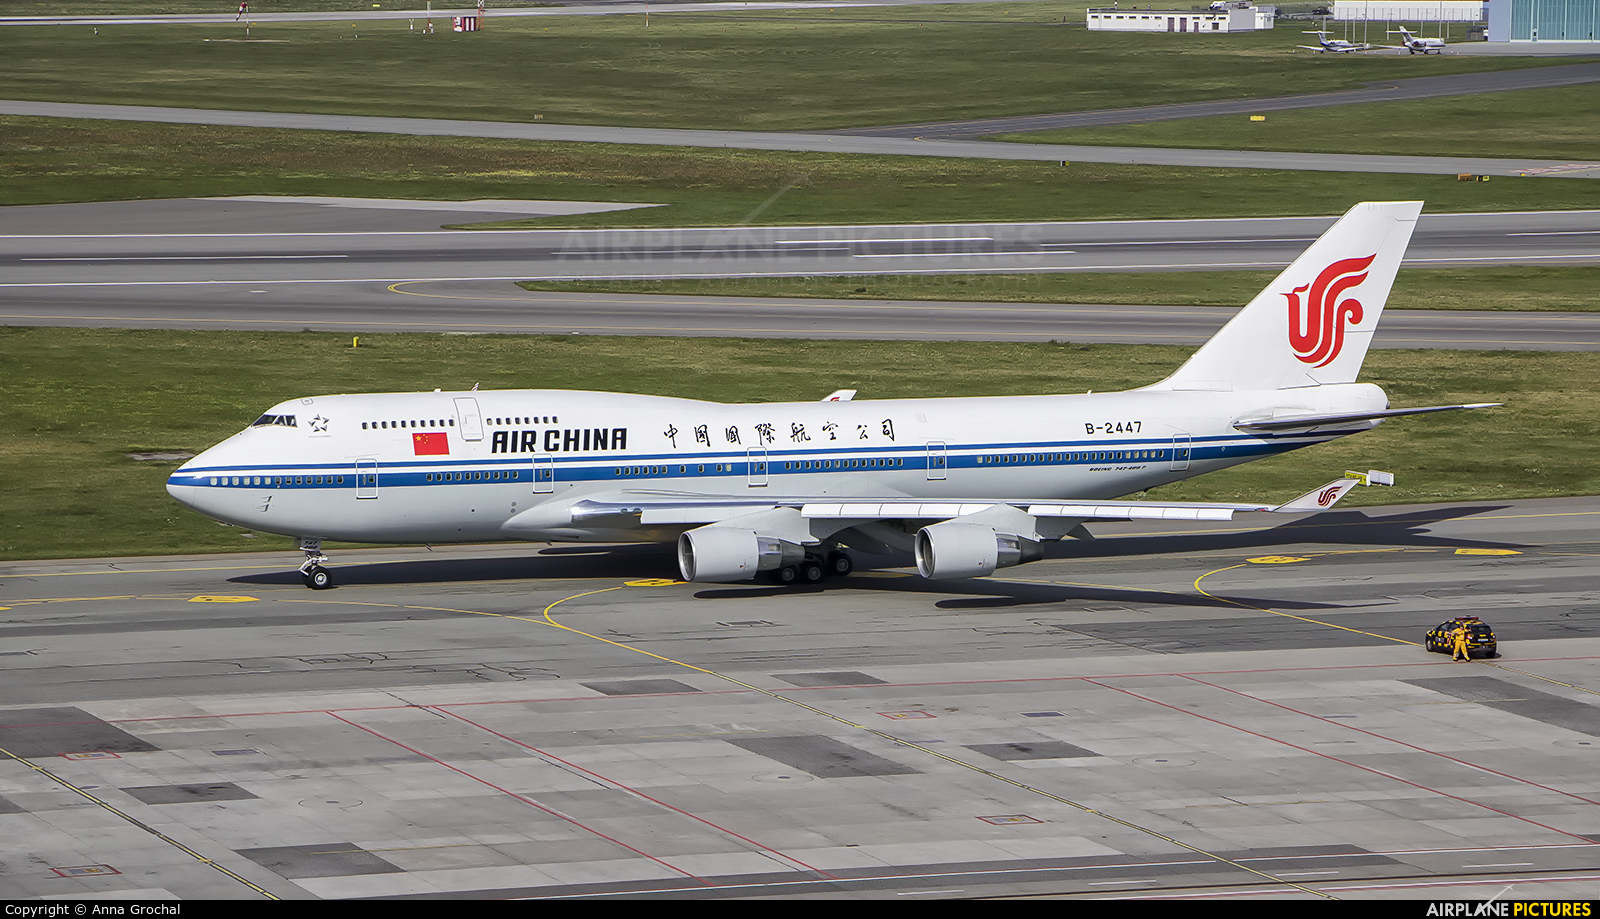 Air China B-2447 aircraft at Warsaw - Frederic Chopin